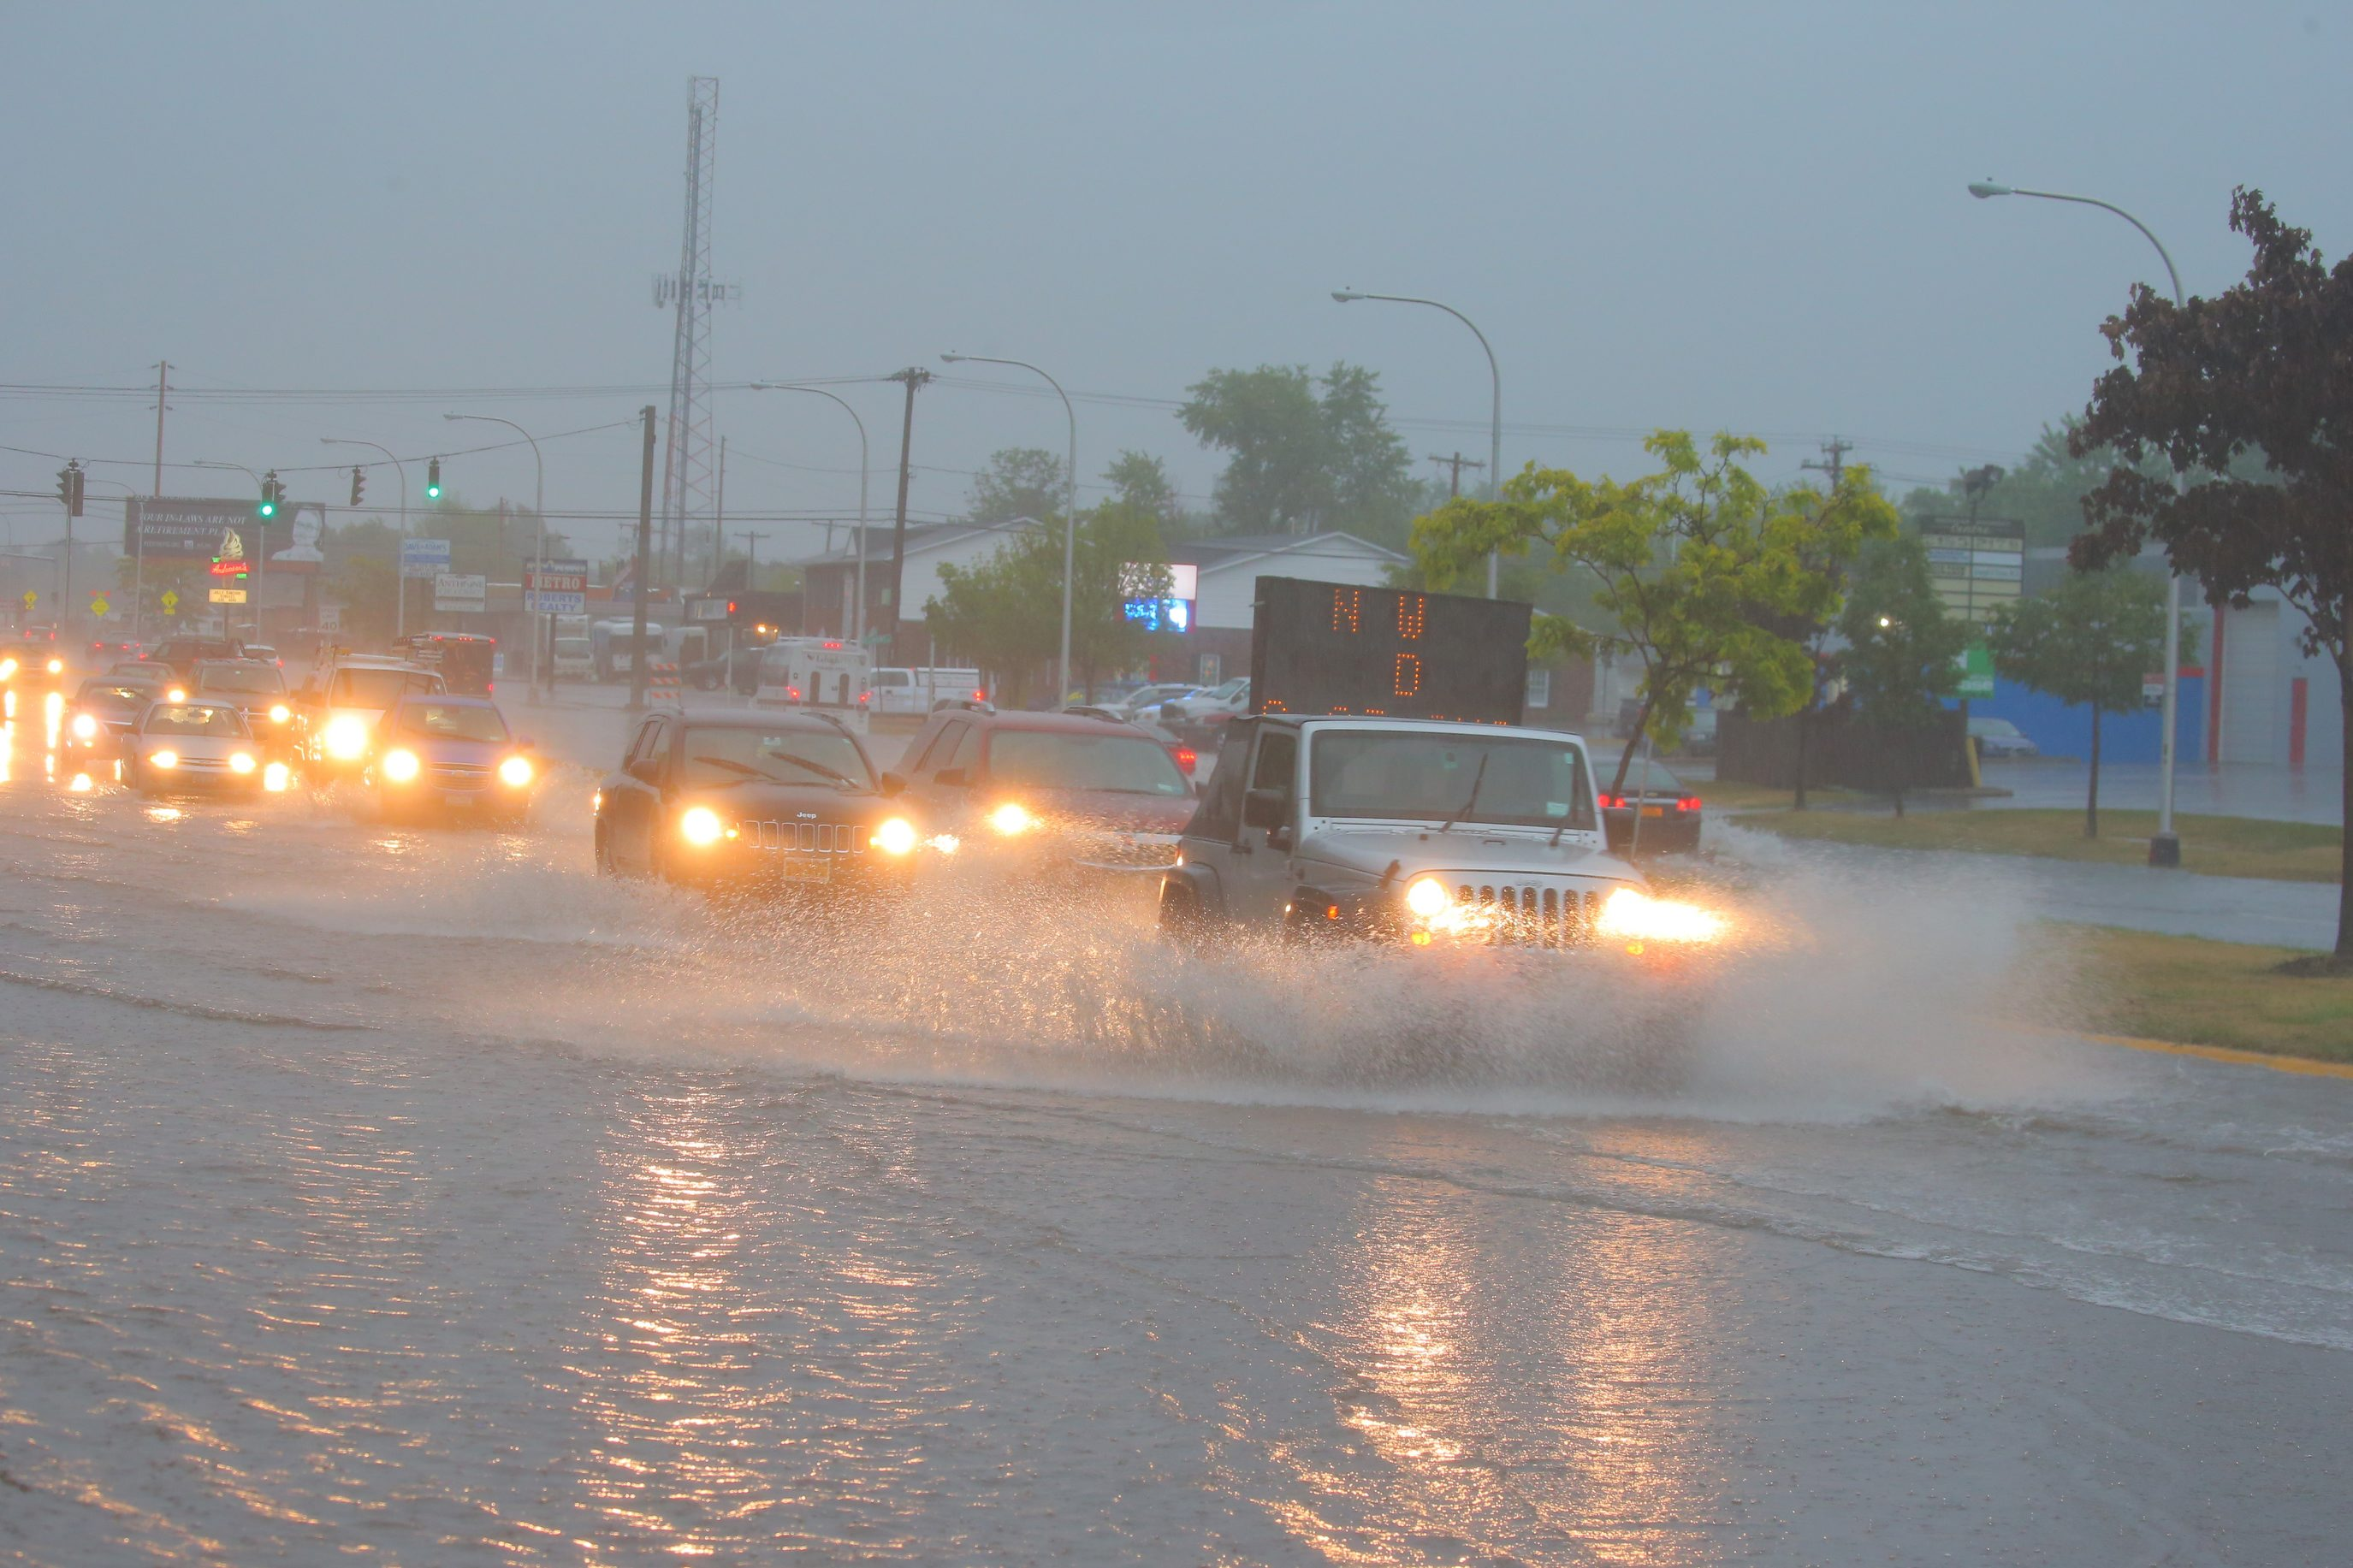 Traffic on wet roads with pooling water Sheridan Drive in Town of Tonawanda, N.Y.,on Monday July 25, 2016, after thunderstorms swept through the area this morning.  (John Hickey/Buffalo News)